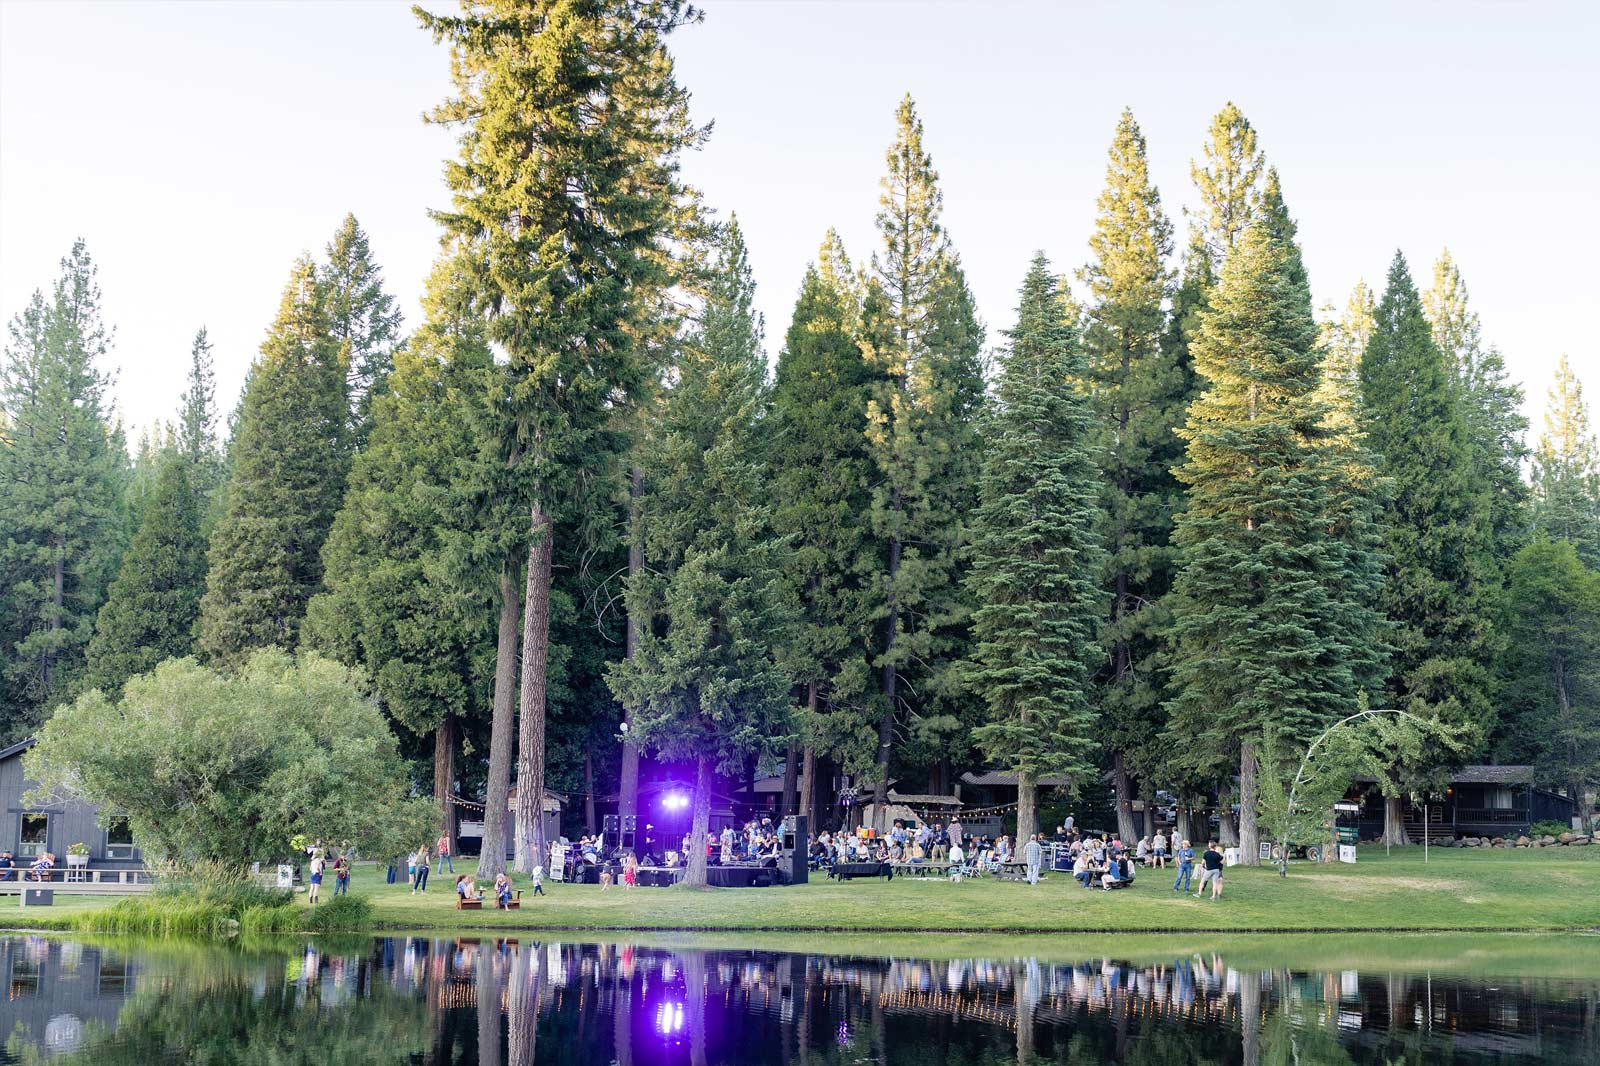 a look across the pond at a large group of Ranch guests at an outdoor concert